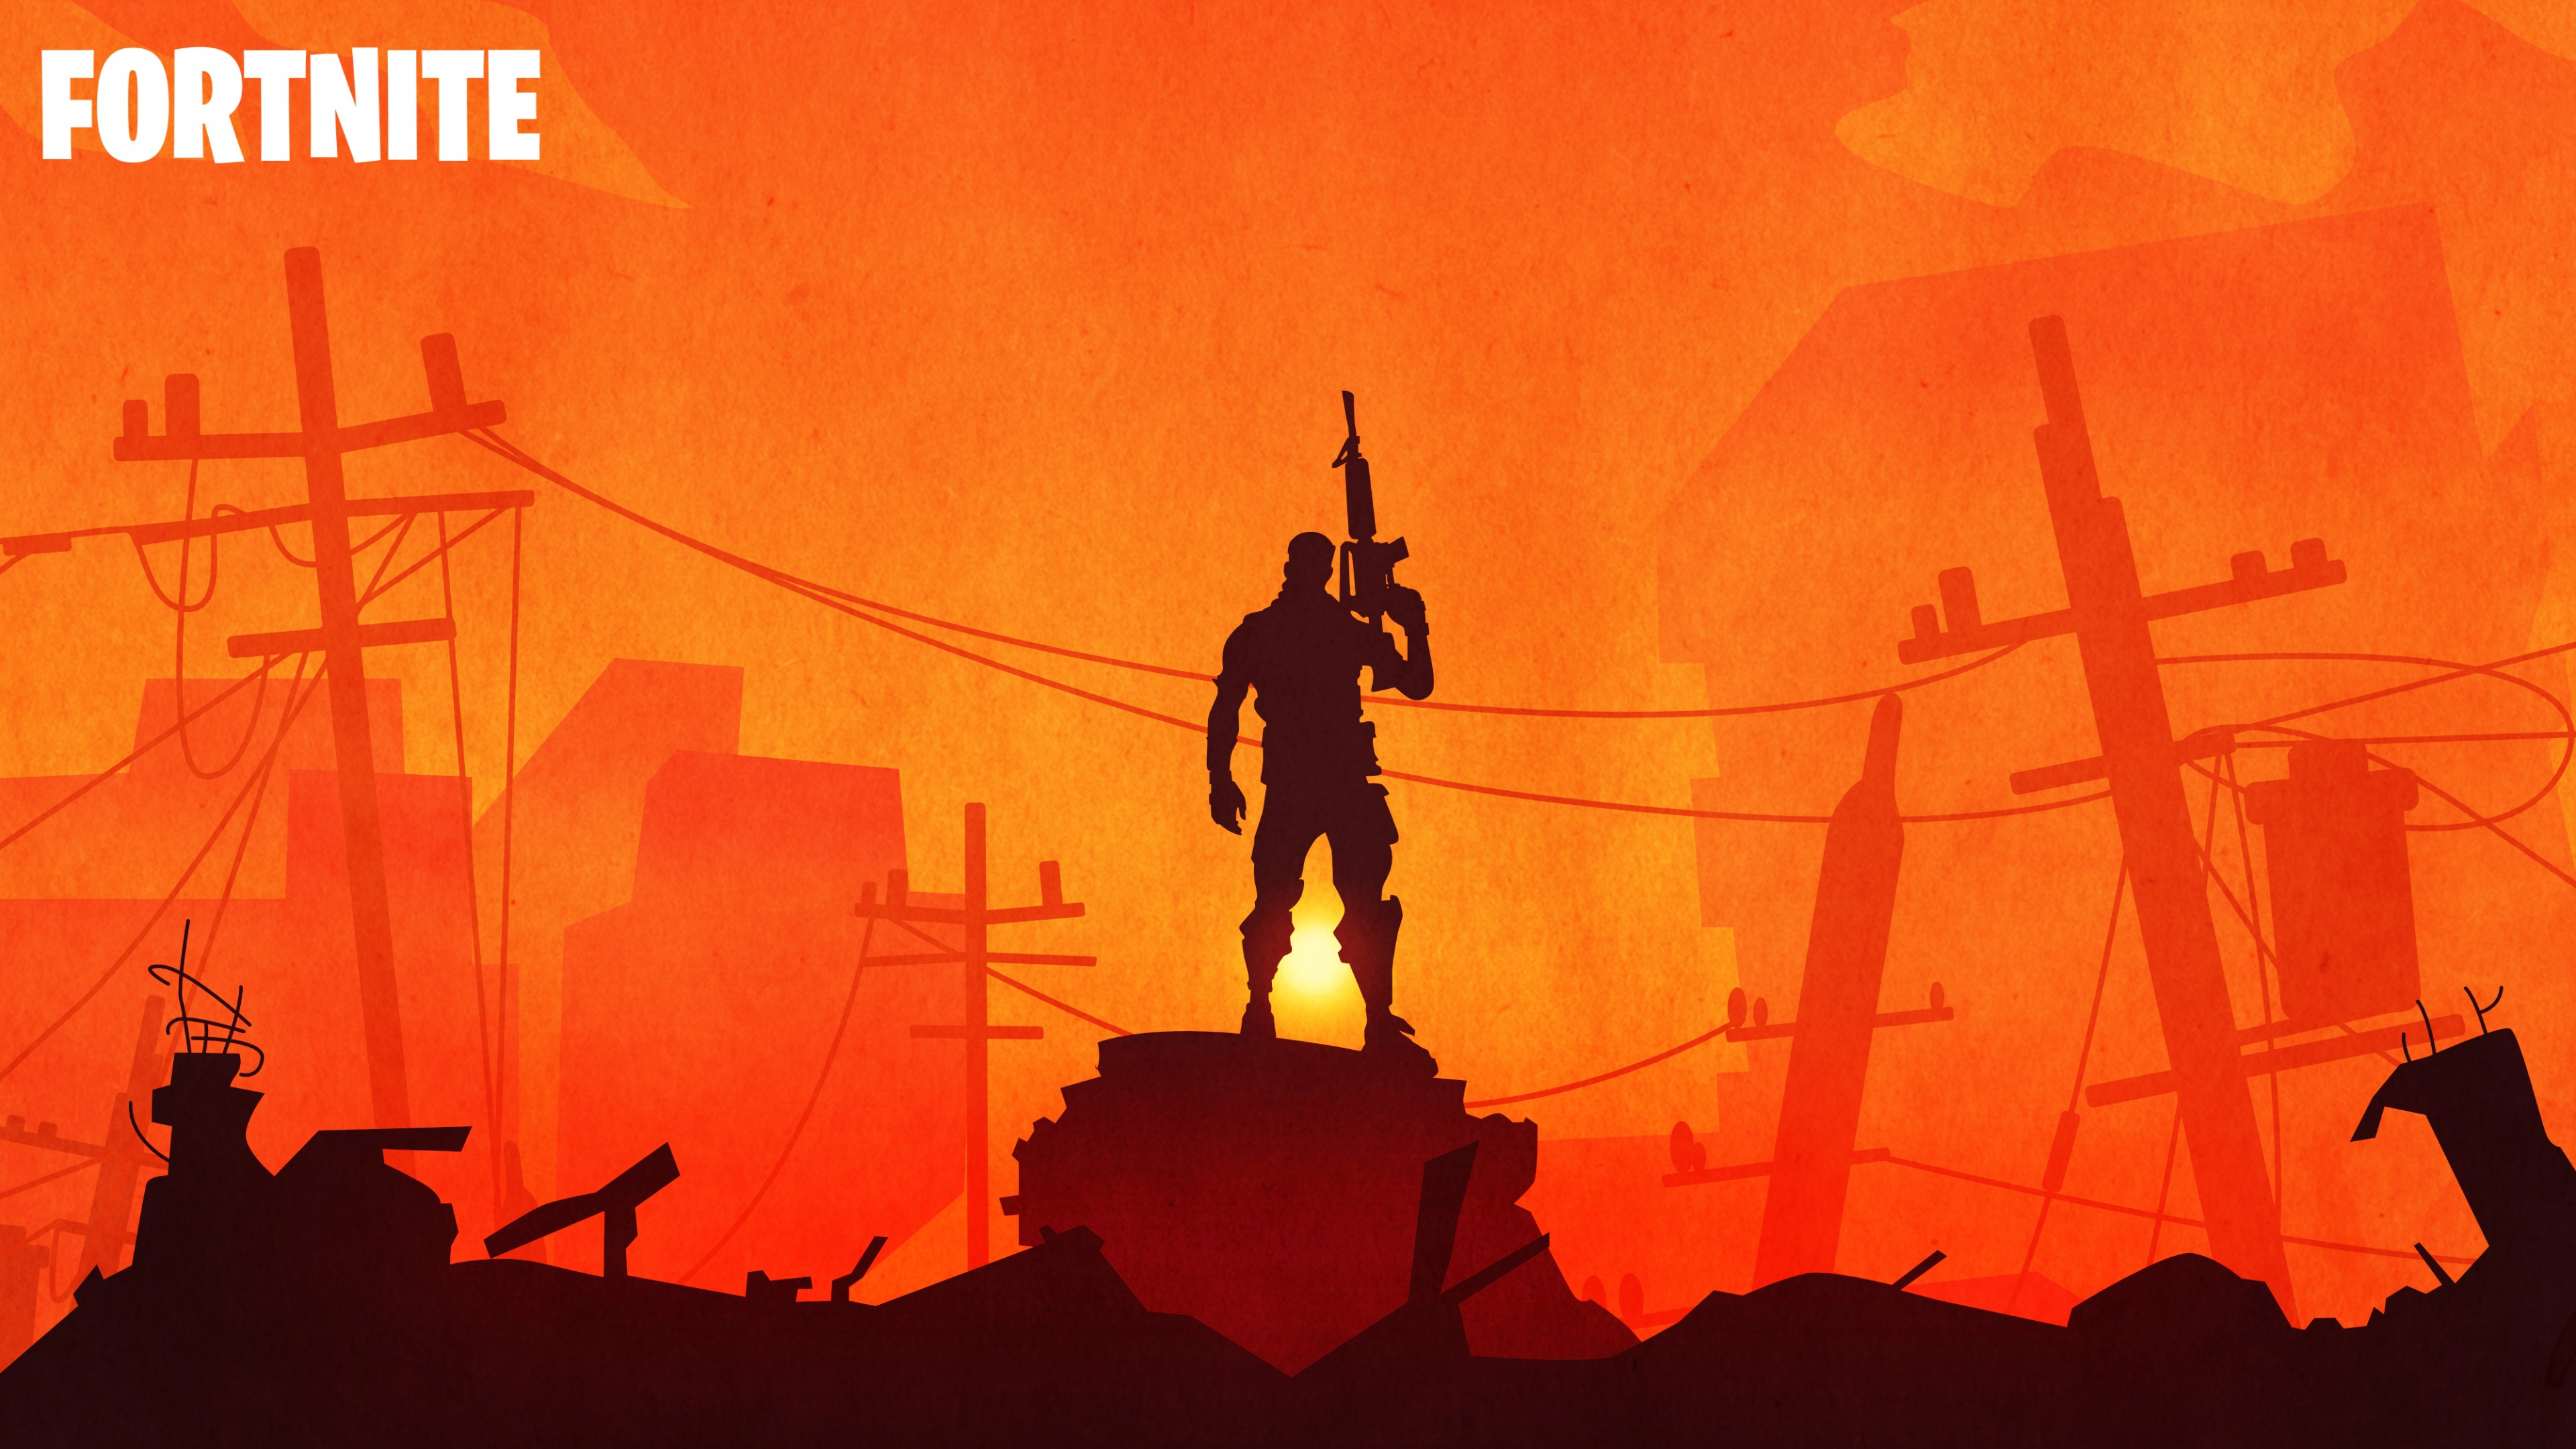 Fortnite Warrior Sunset Silhouette 4k 4110 Wallpapers and 3840x2160